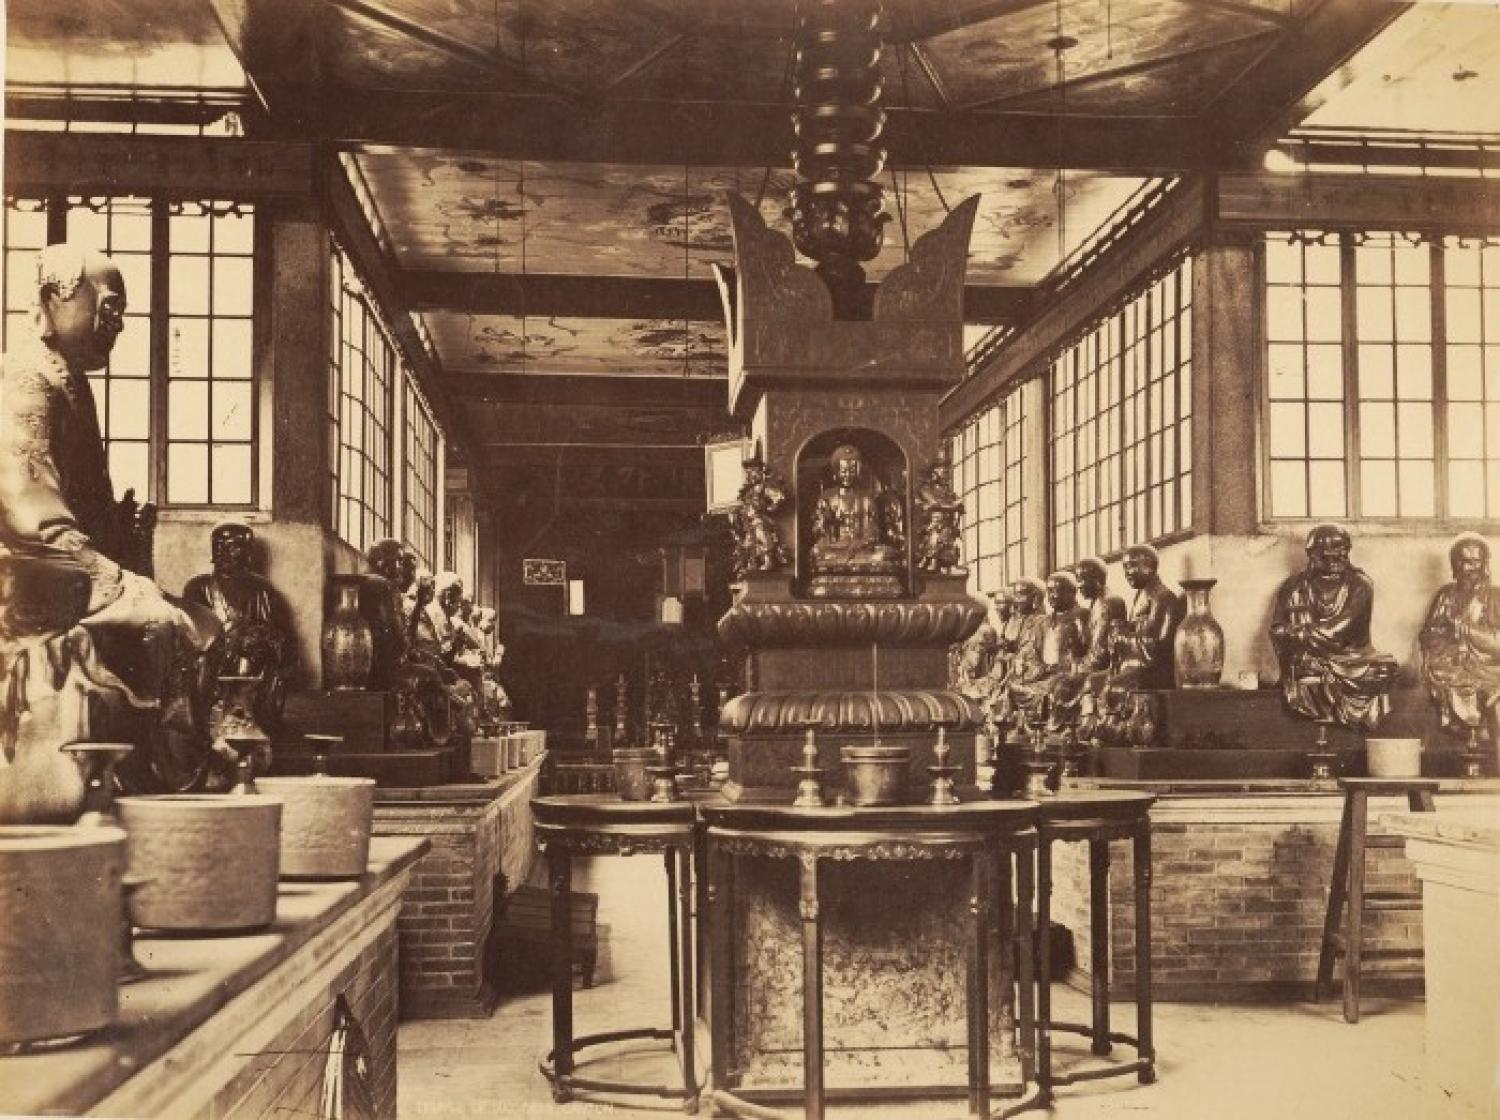 Temple of 500 Genii. Canton China C1880